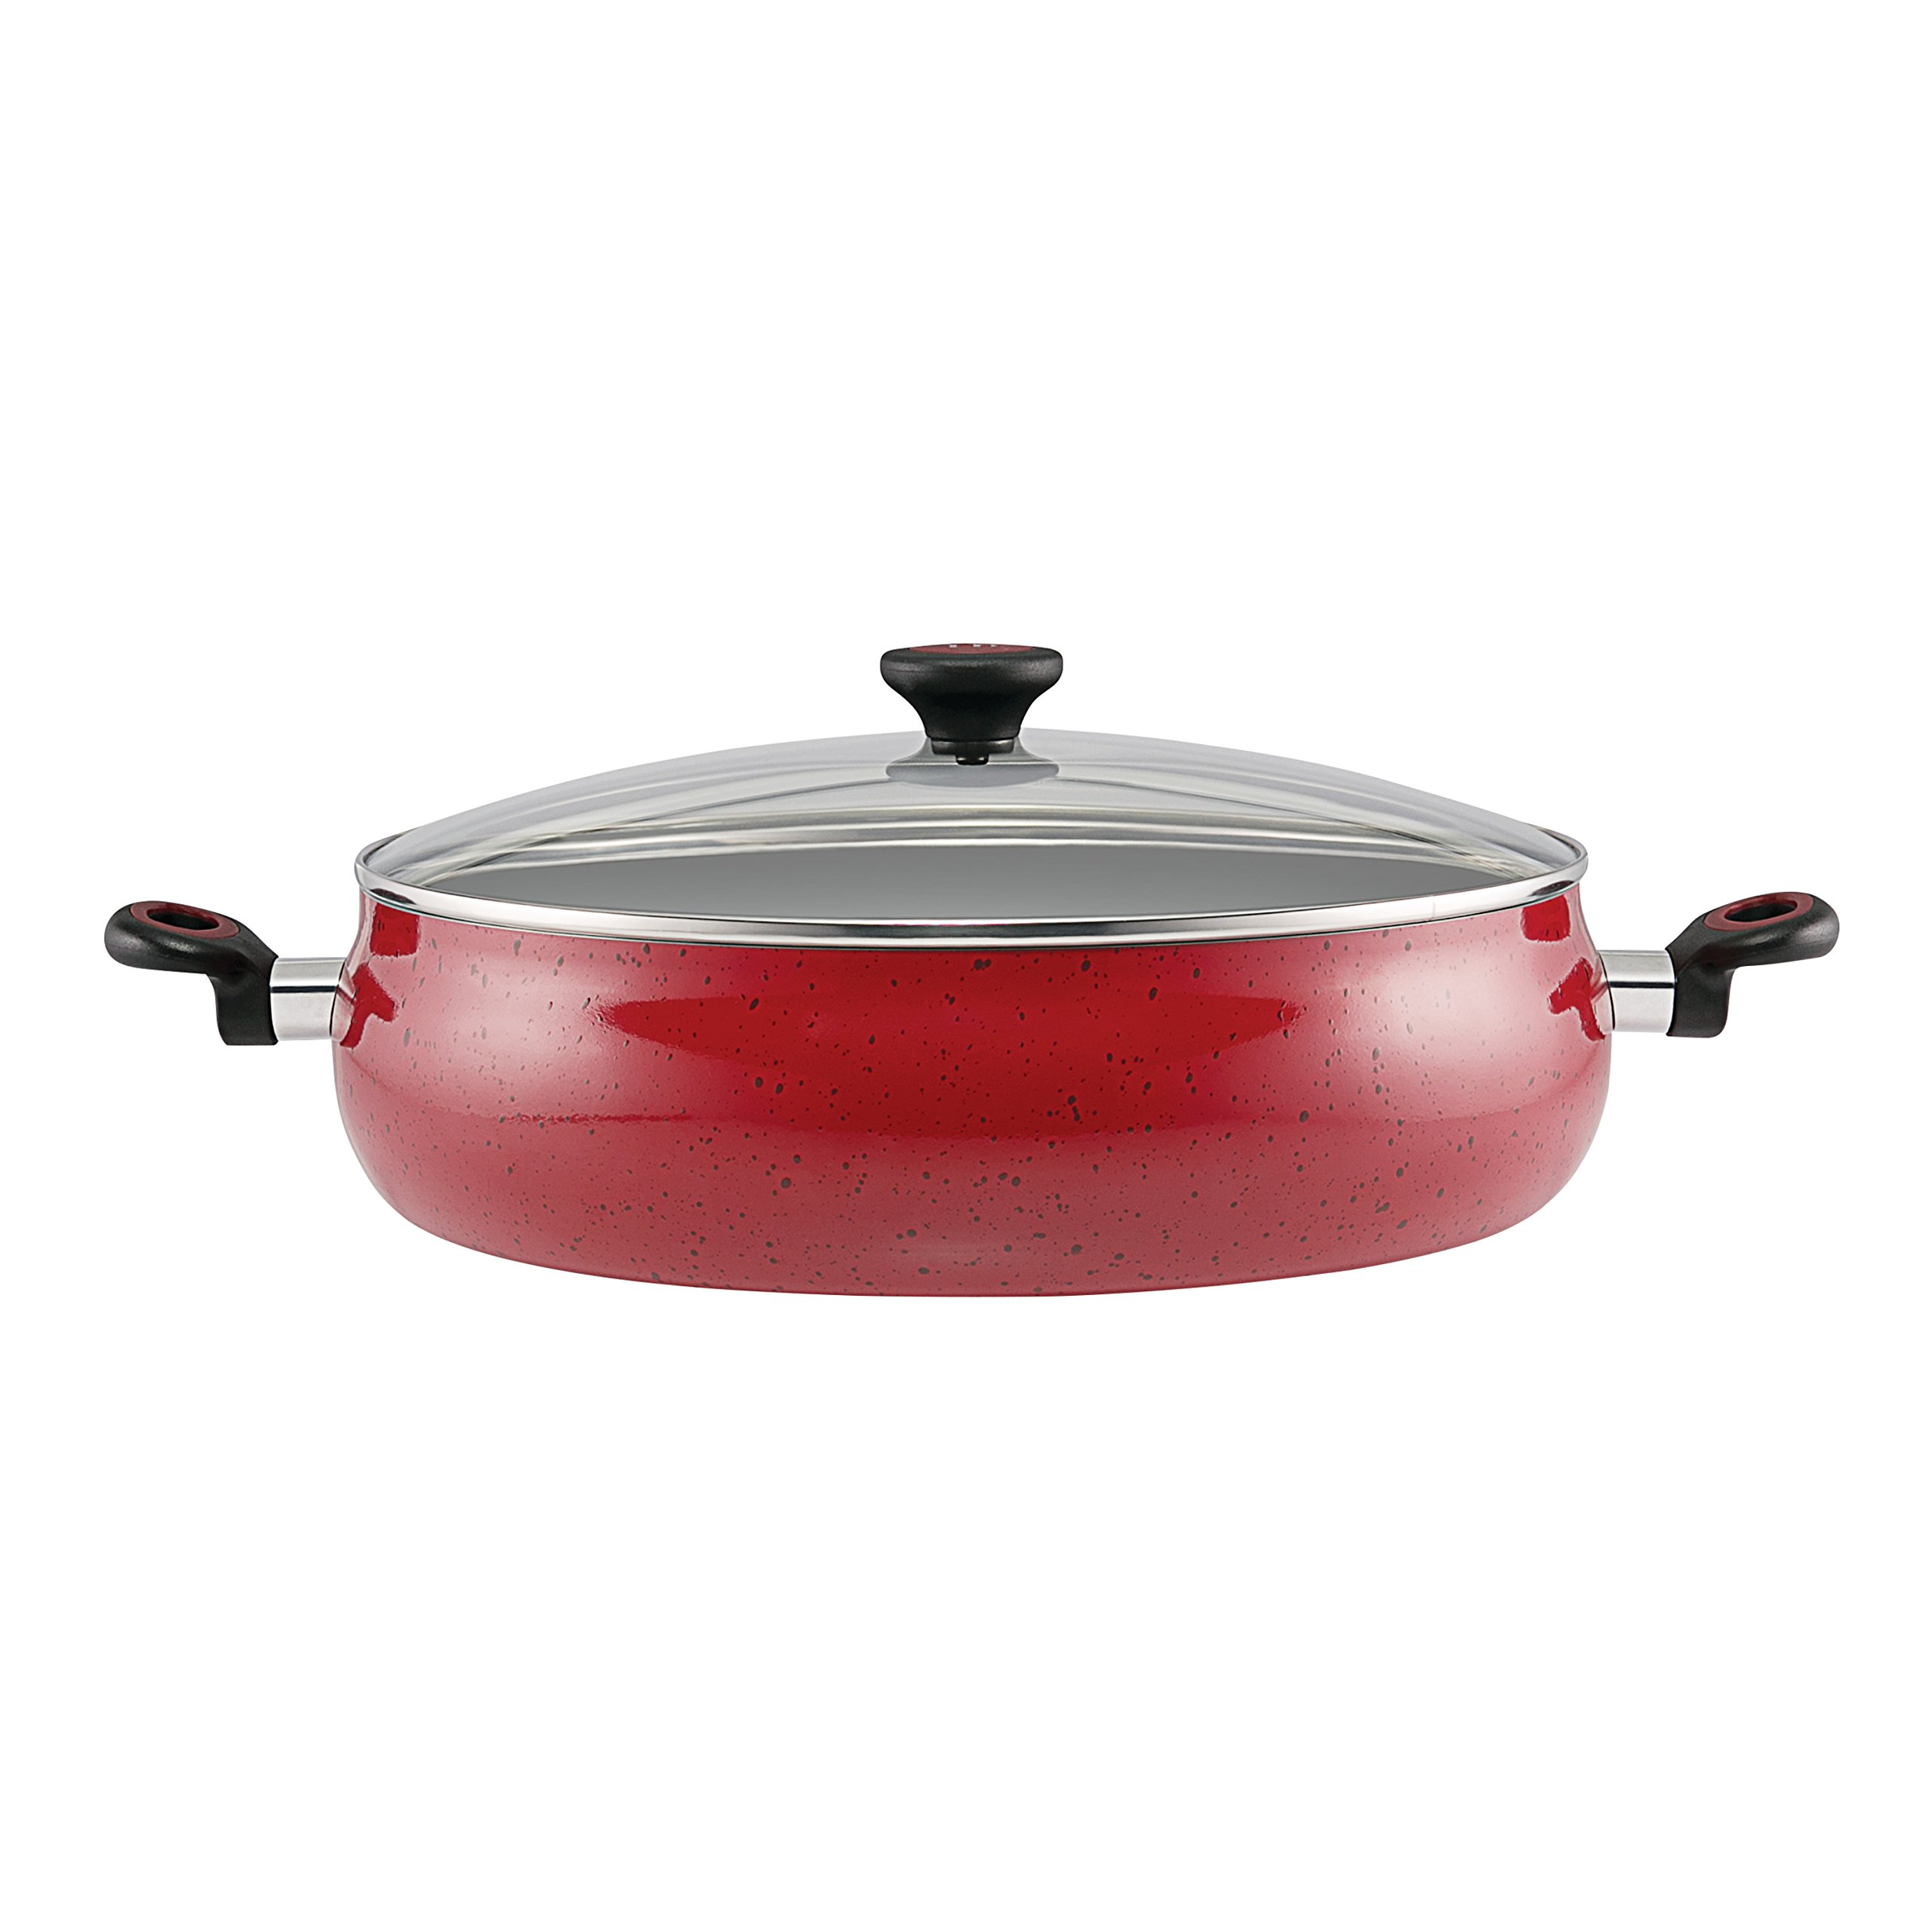 Paula Deen Riverbend Aluminum Nonstick Covered Family Gathering Pan/Large Jumbo Cooker, 10-Quart, 13.75-Inch, Red Speckle